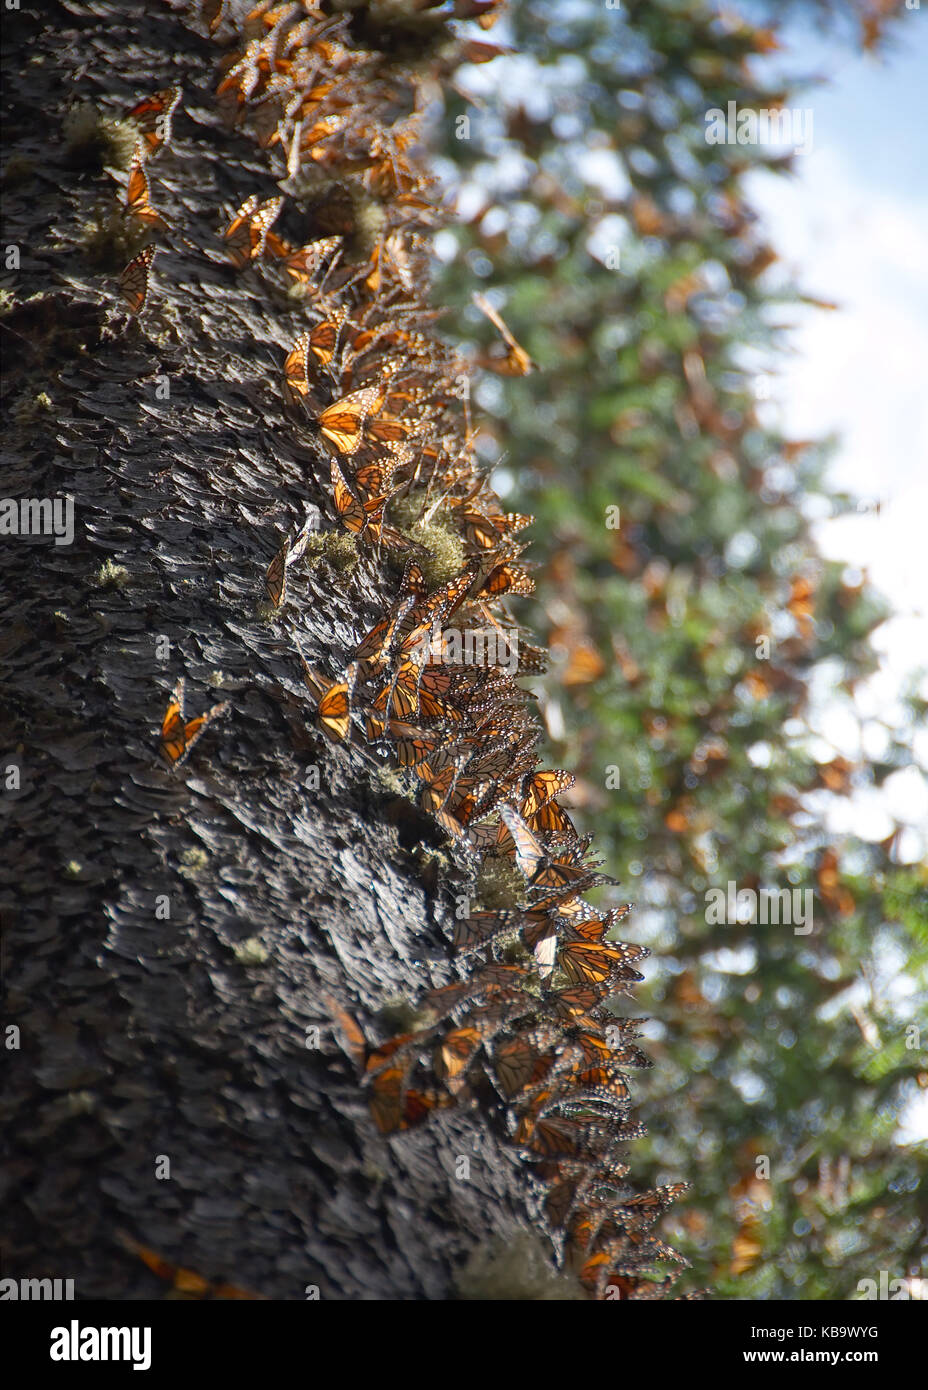 Monarch butterflies arriving at Michoacan, Mexico, after migrating from Canada. - Stock Image